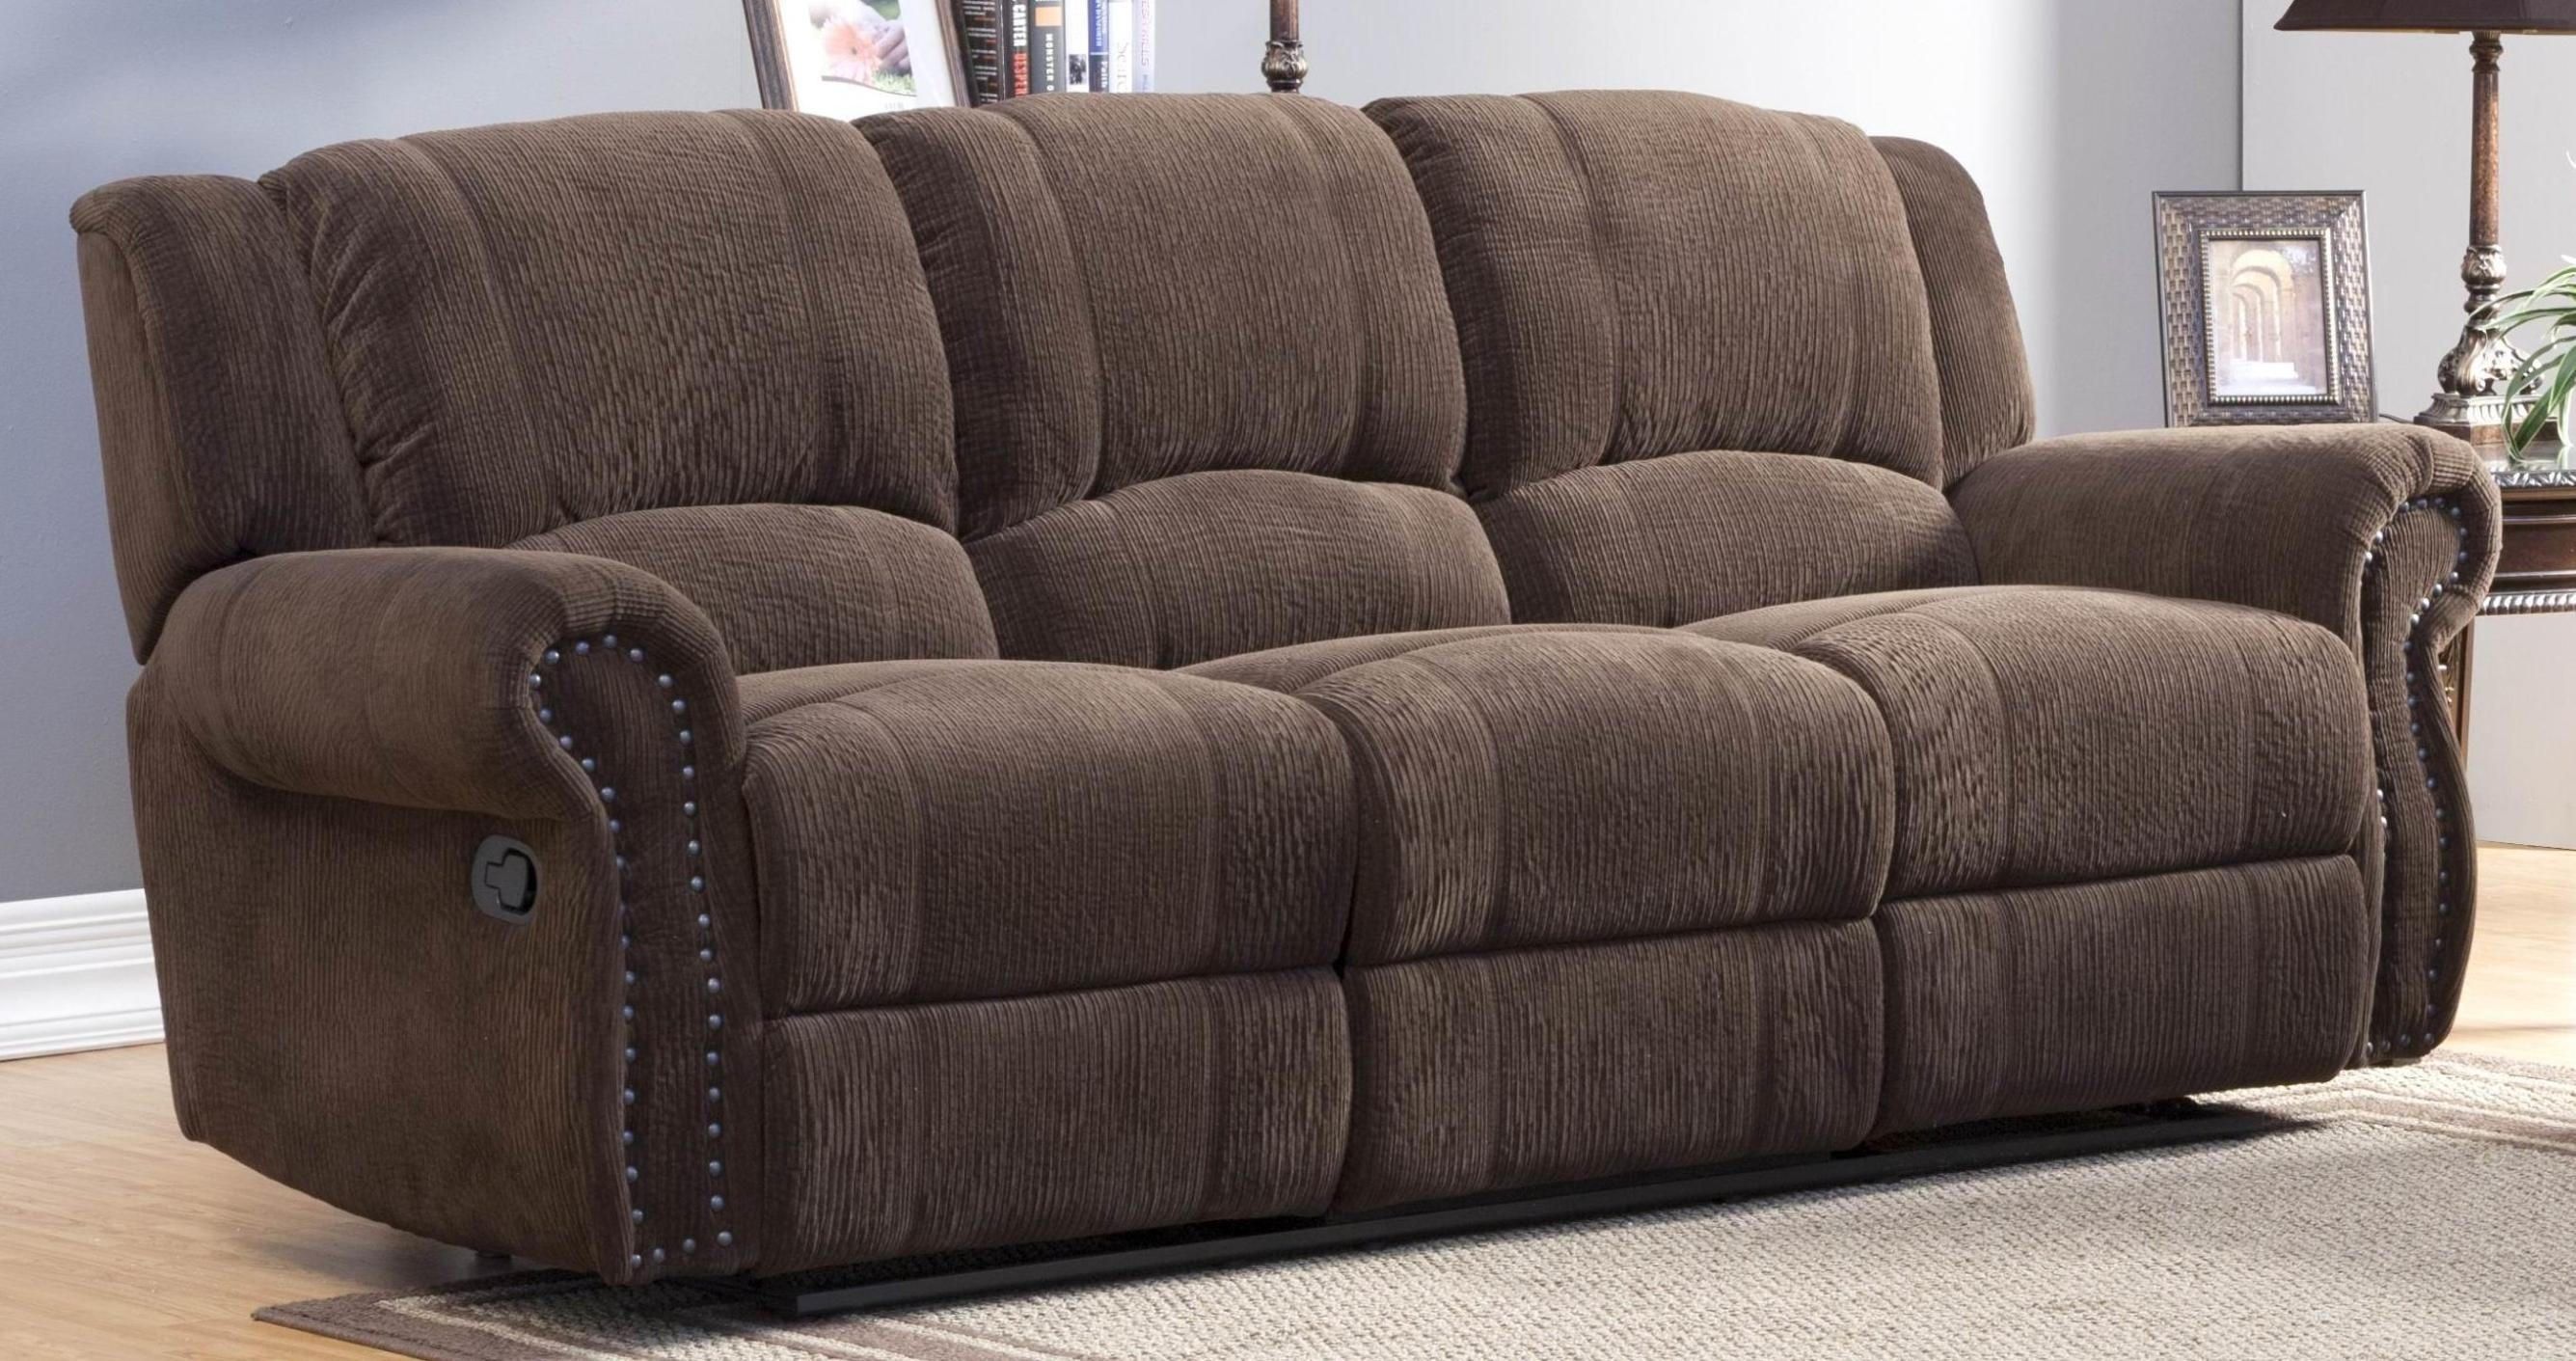 Reclining Sofa Covers | Tehranmix Decoration In Recliner Sofa Slipcovers (Image 10 of 20)